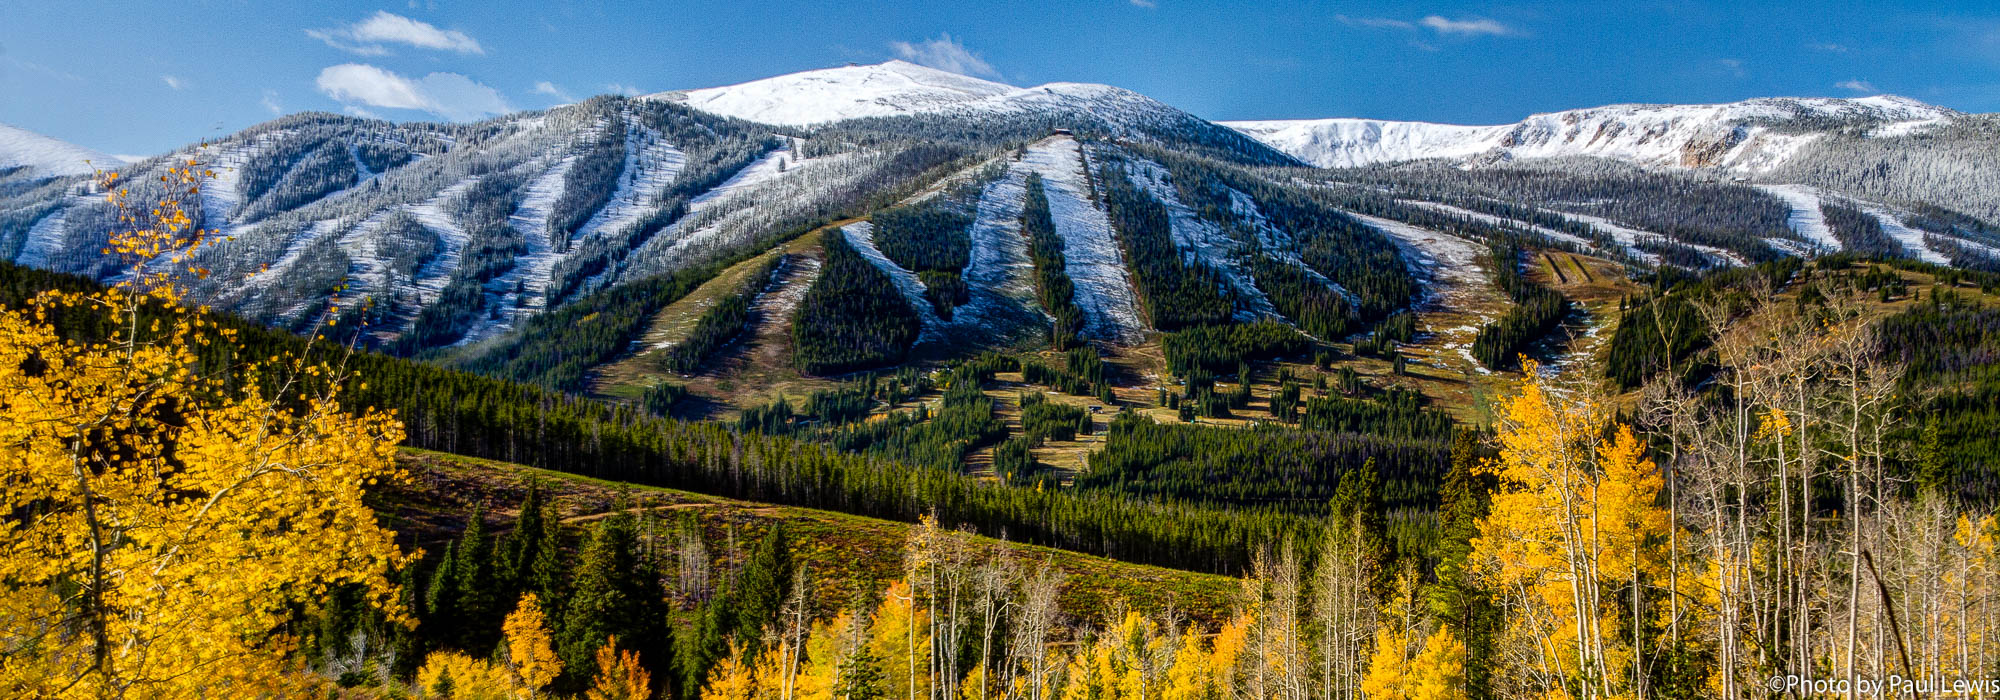 Winter's Edge, Winter Park Ski Resort